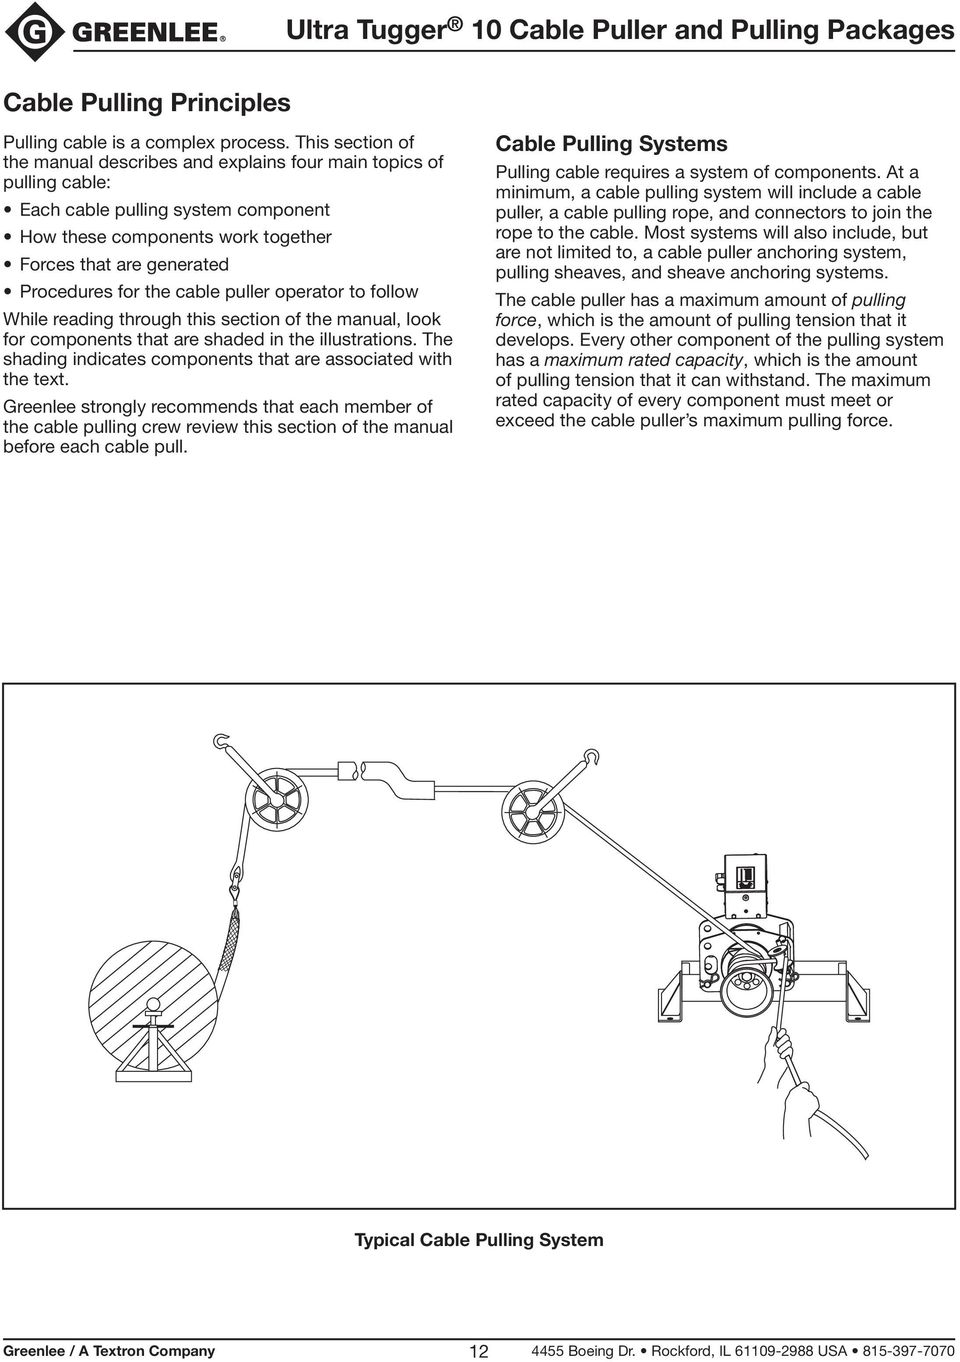 the cable puller operator to follow While reading through this section of the manual, look for components that are shaded in the illustrations.